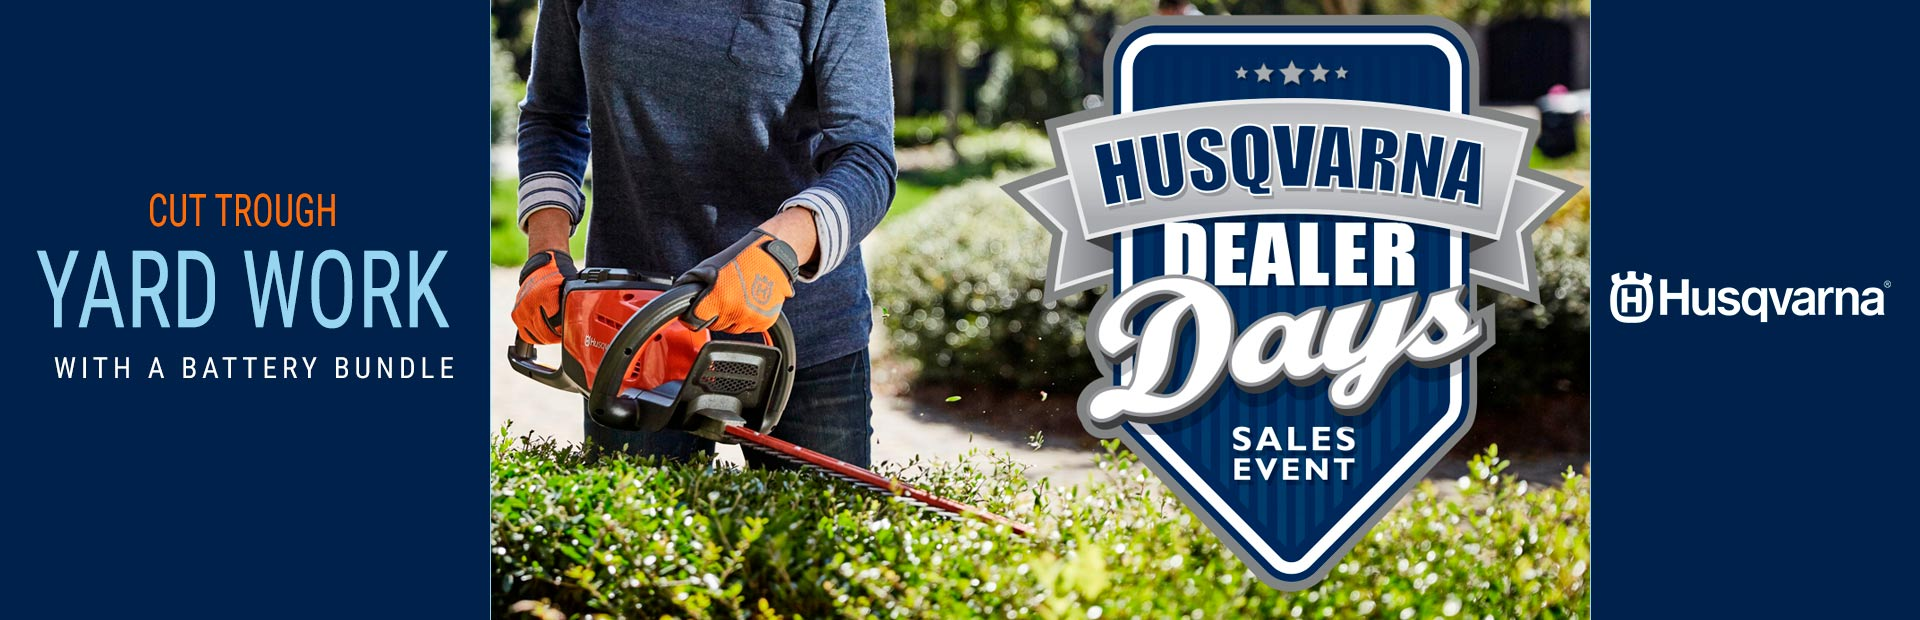 Husqvarna: Cut Through Yard Work With a Battery Bundle